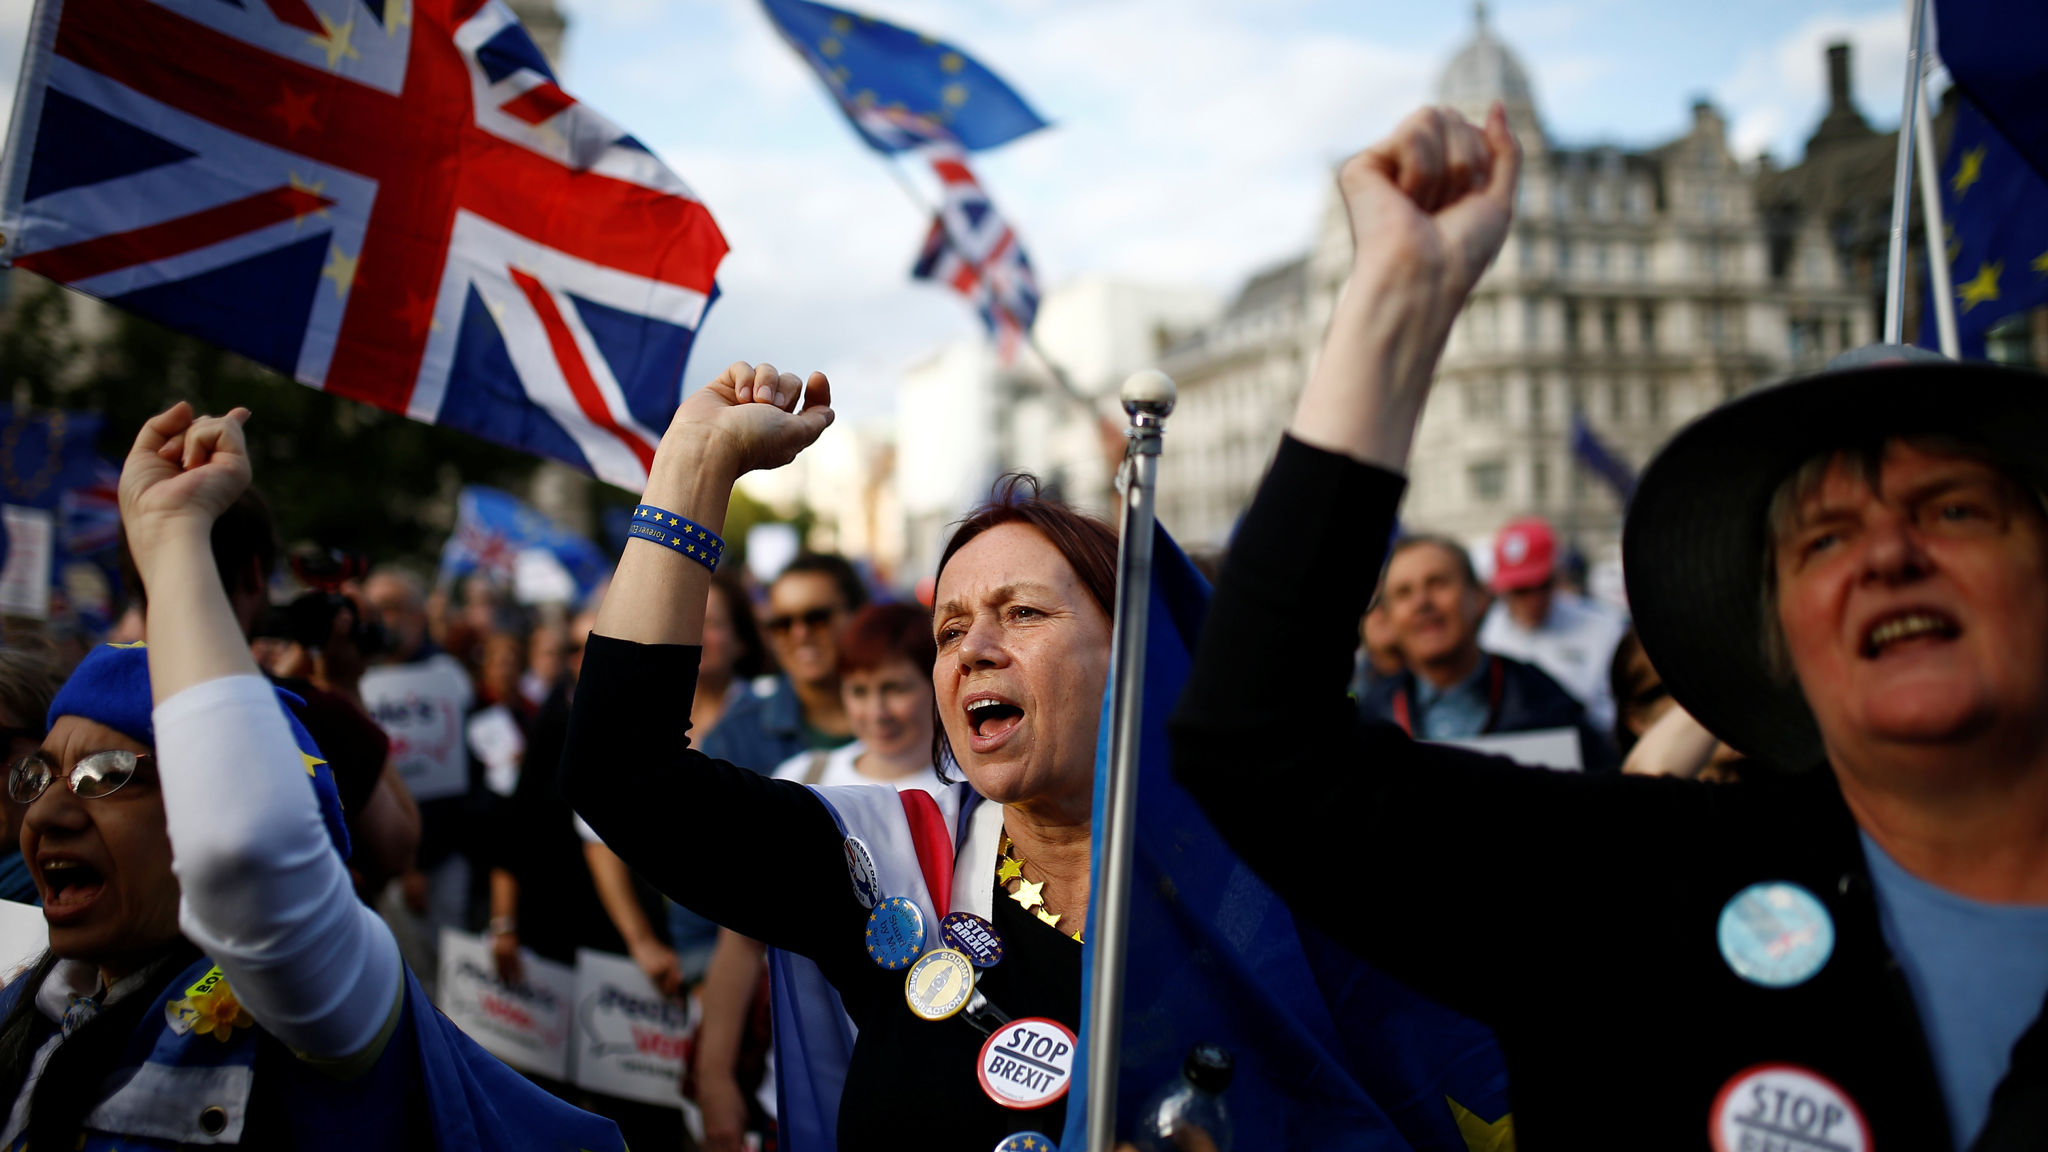 Anti-Brexit protesters demonstrate outside the Houses of Parliament in London